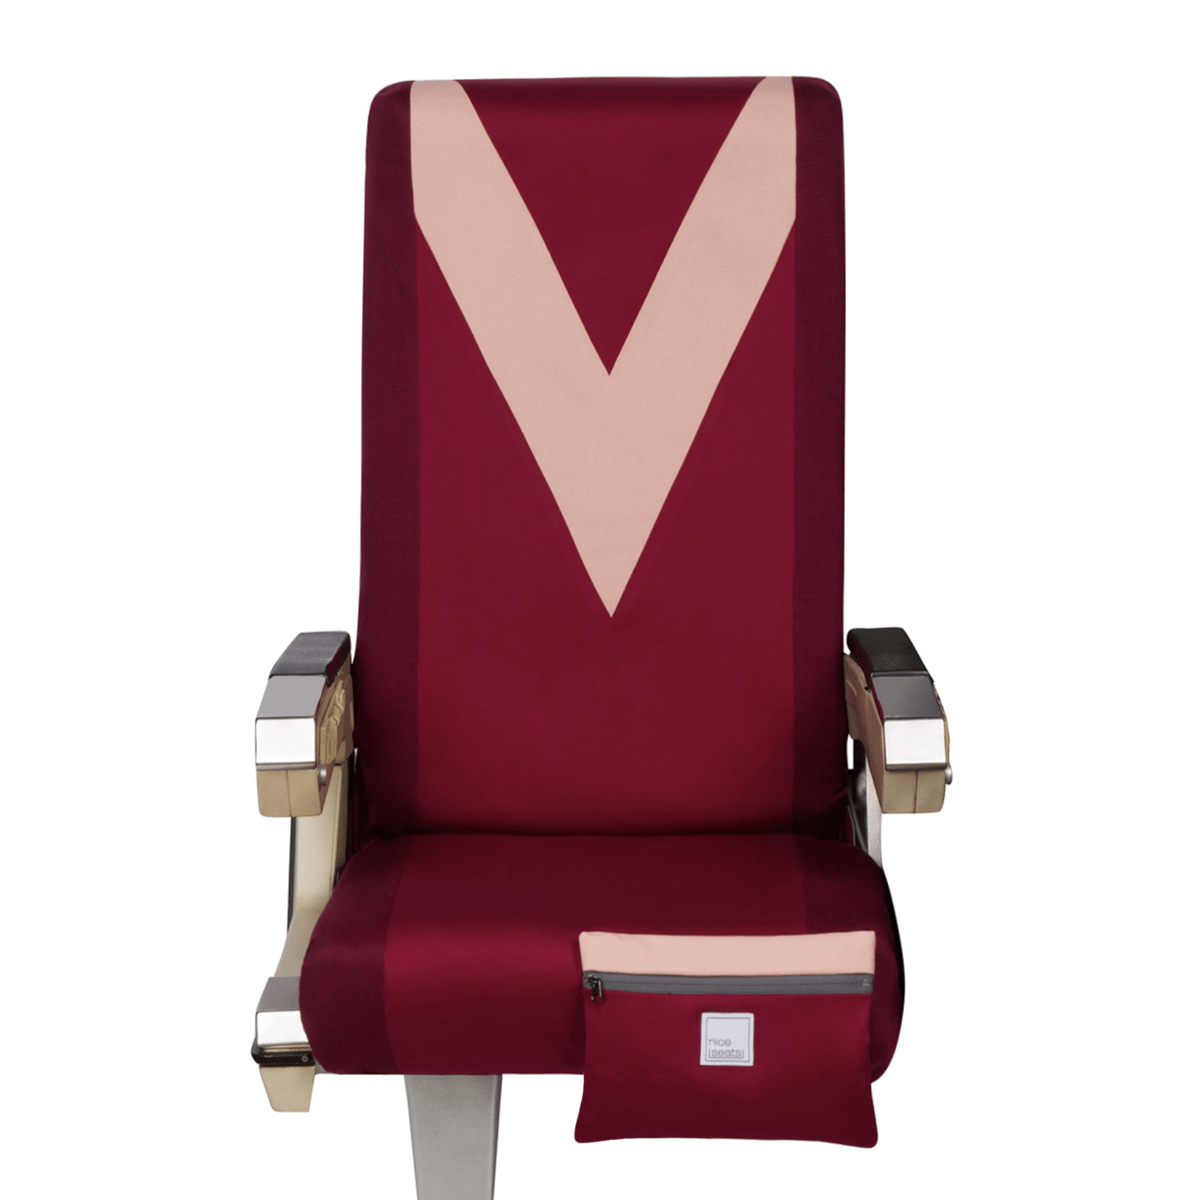 Eva Franco Seat Cover Airplane Seat Cover in Bordeaux & Chevron - Free Mask with Purchase